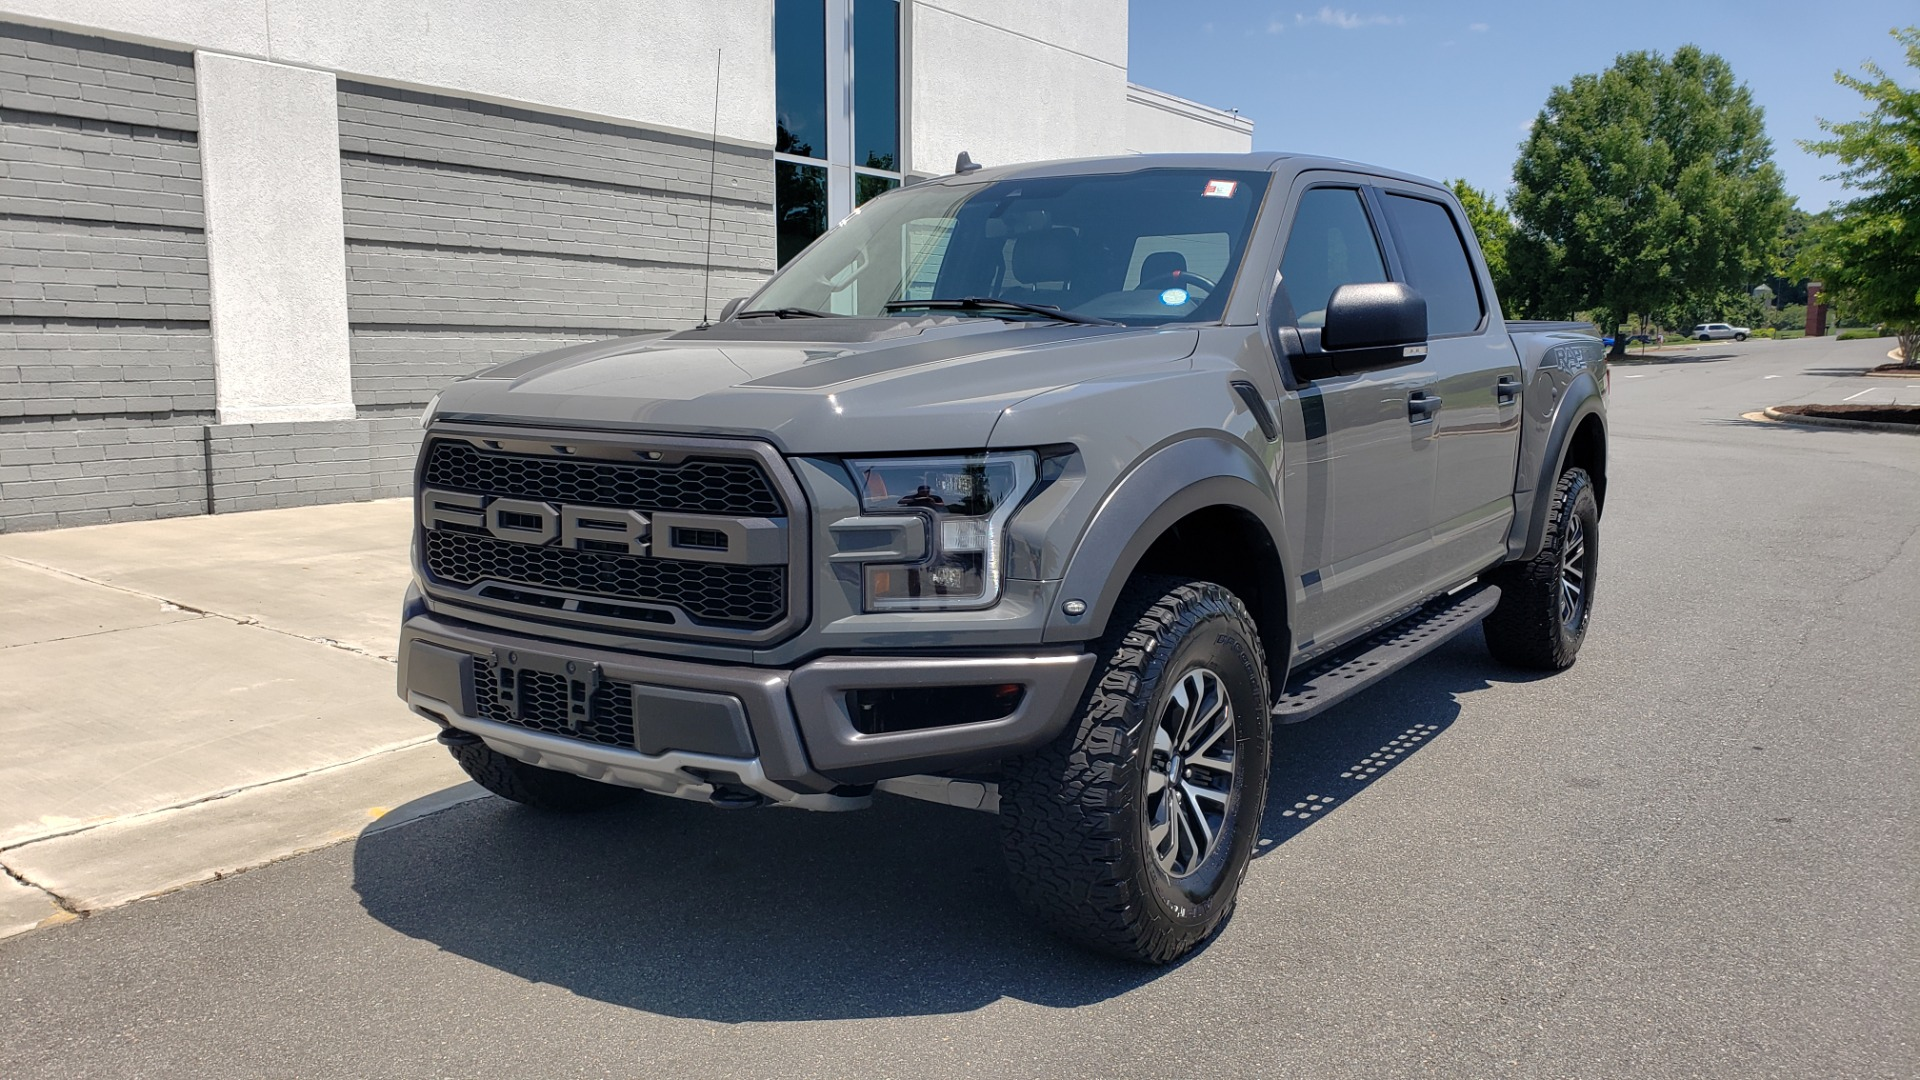 Used 2020 Ford F-150 RAPTOR 4X4 SUPERCREW / 3.5L ECOBOOST / 10-SPD AUTO / SUNROOF / REARVIEW for sale $82,500 at Formula Imports in Charlotte NC 28227 3